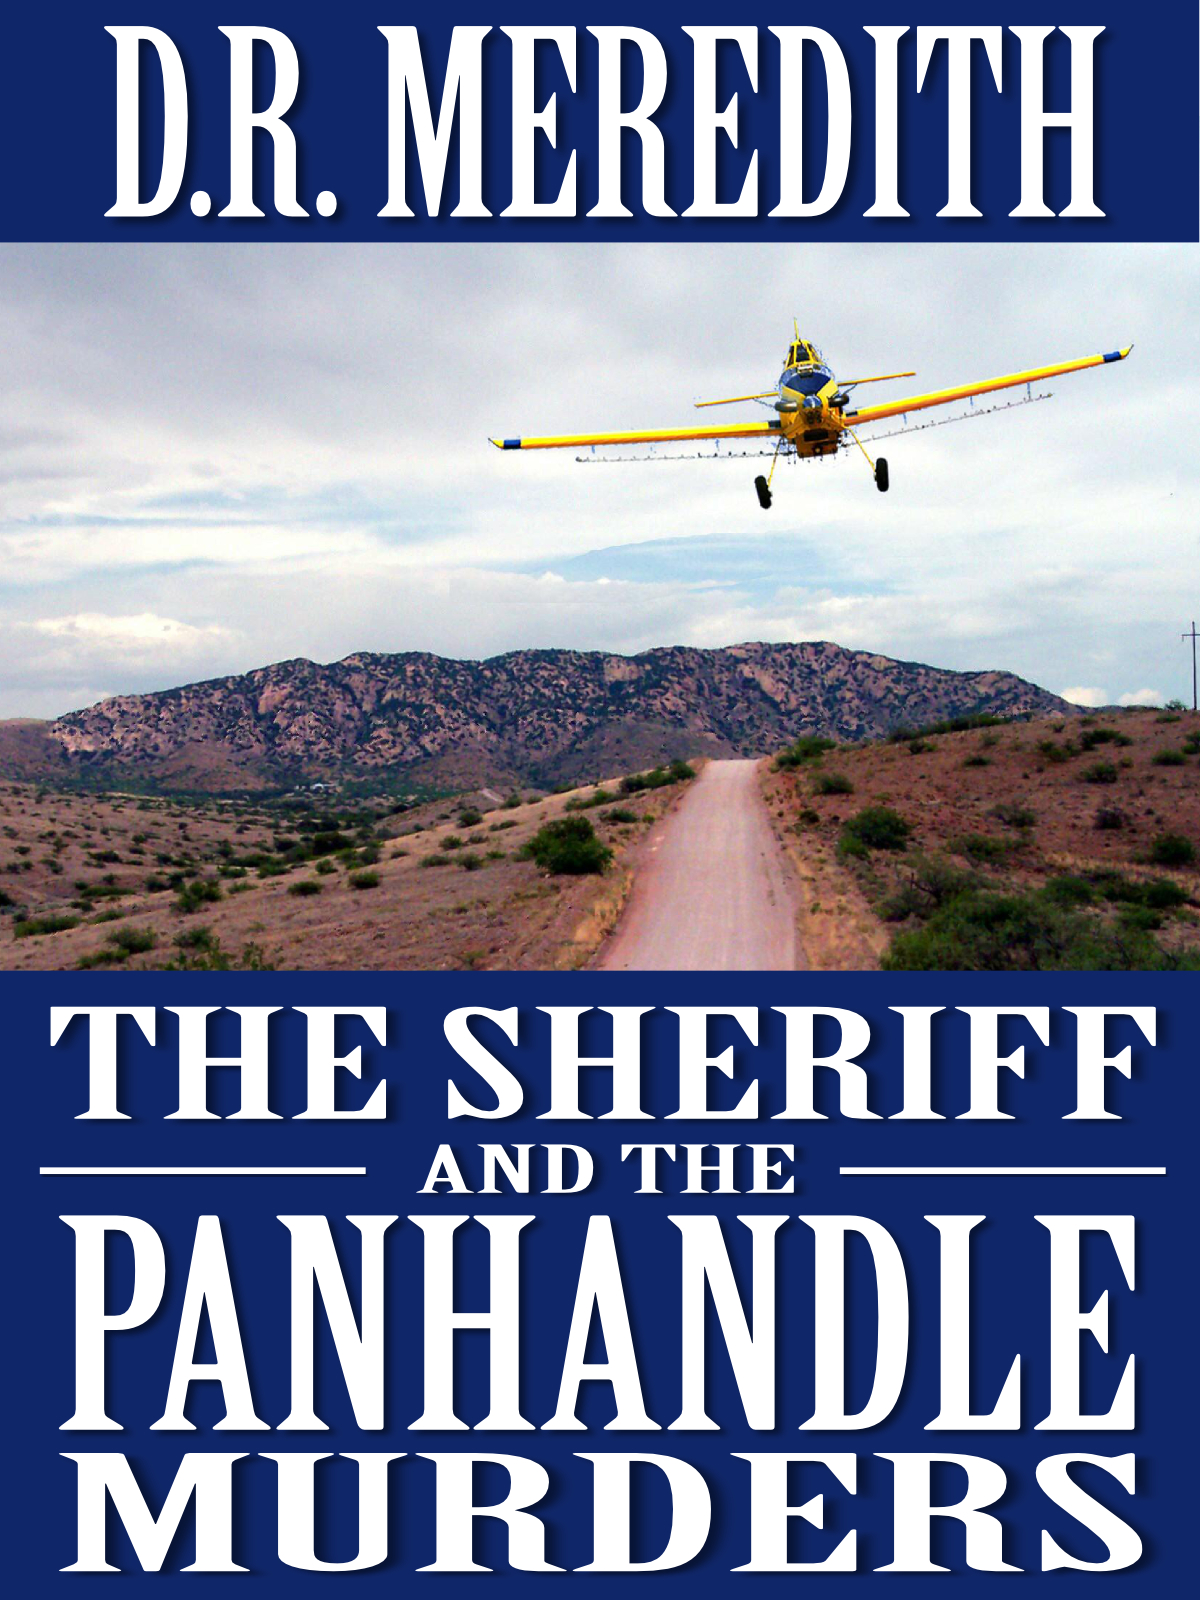 D.R. Meredith - The Sheriff and the Panhandle Murders